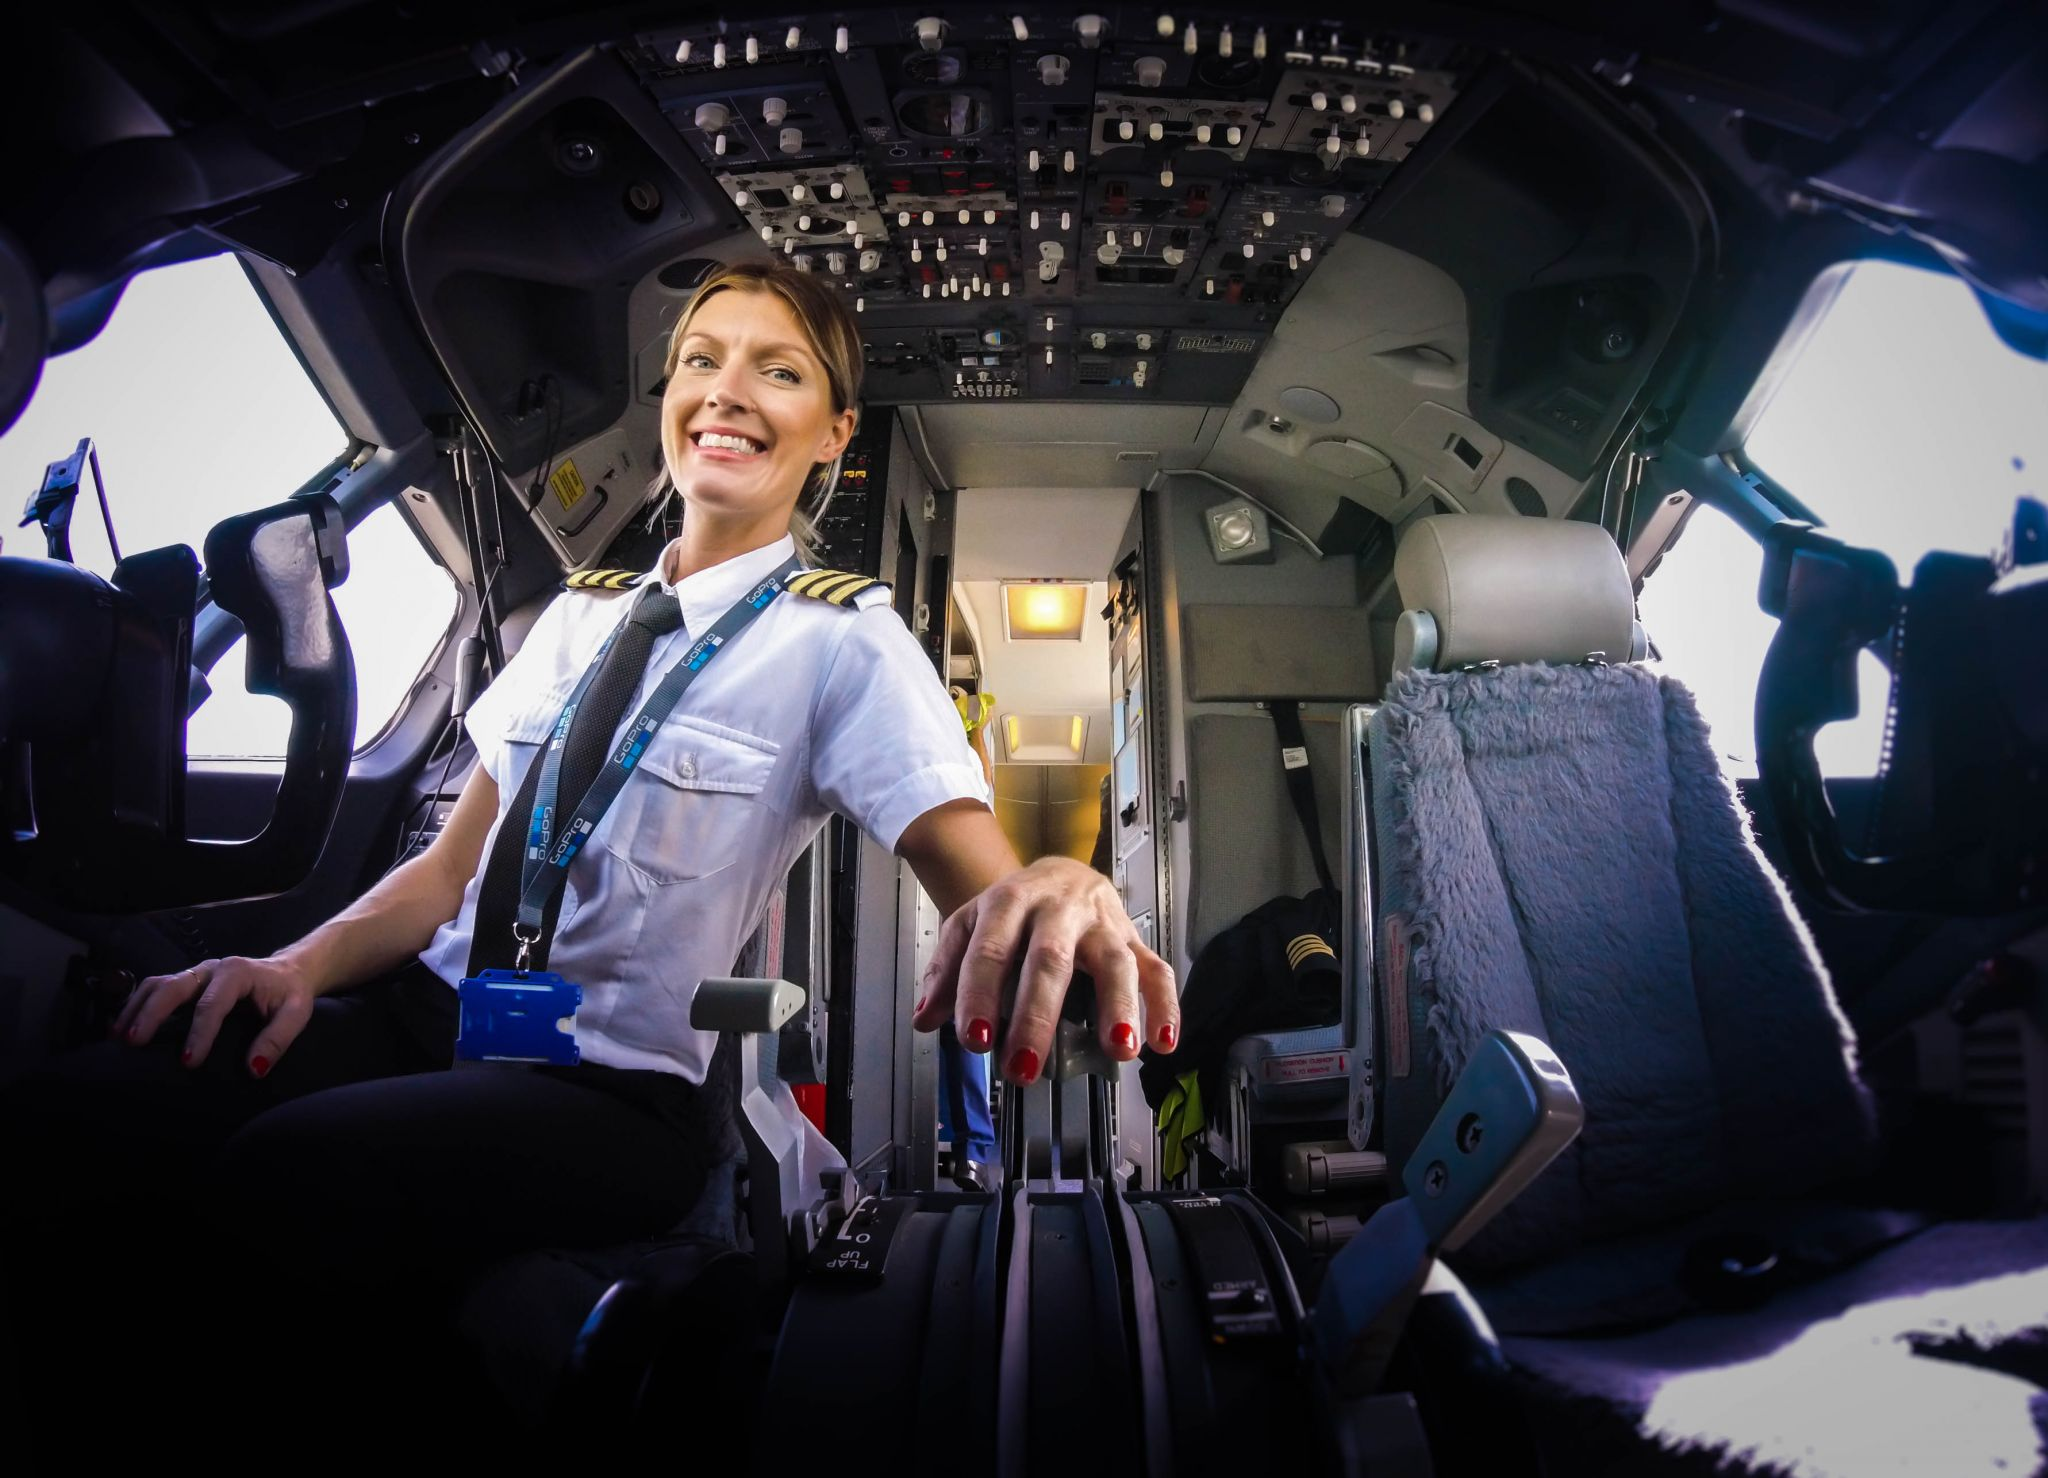 My route to the right hand seat - @pilotmaria